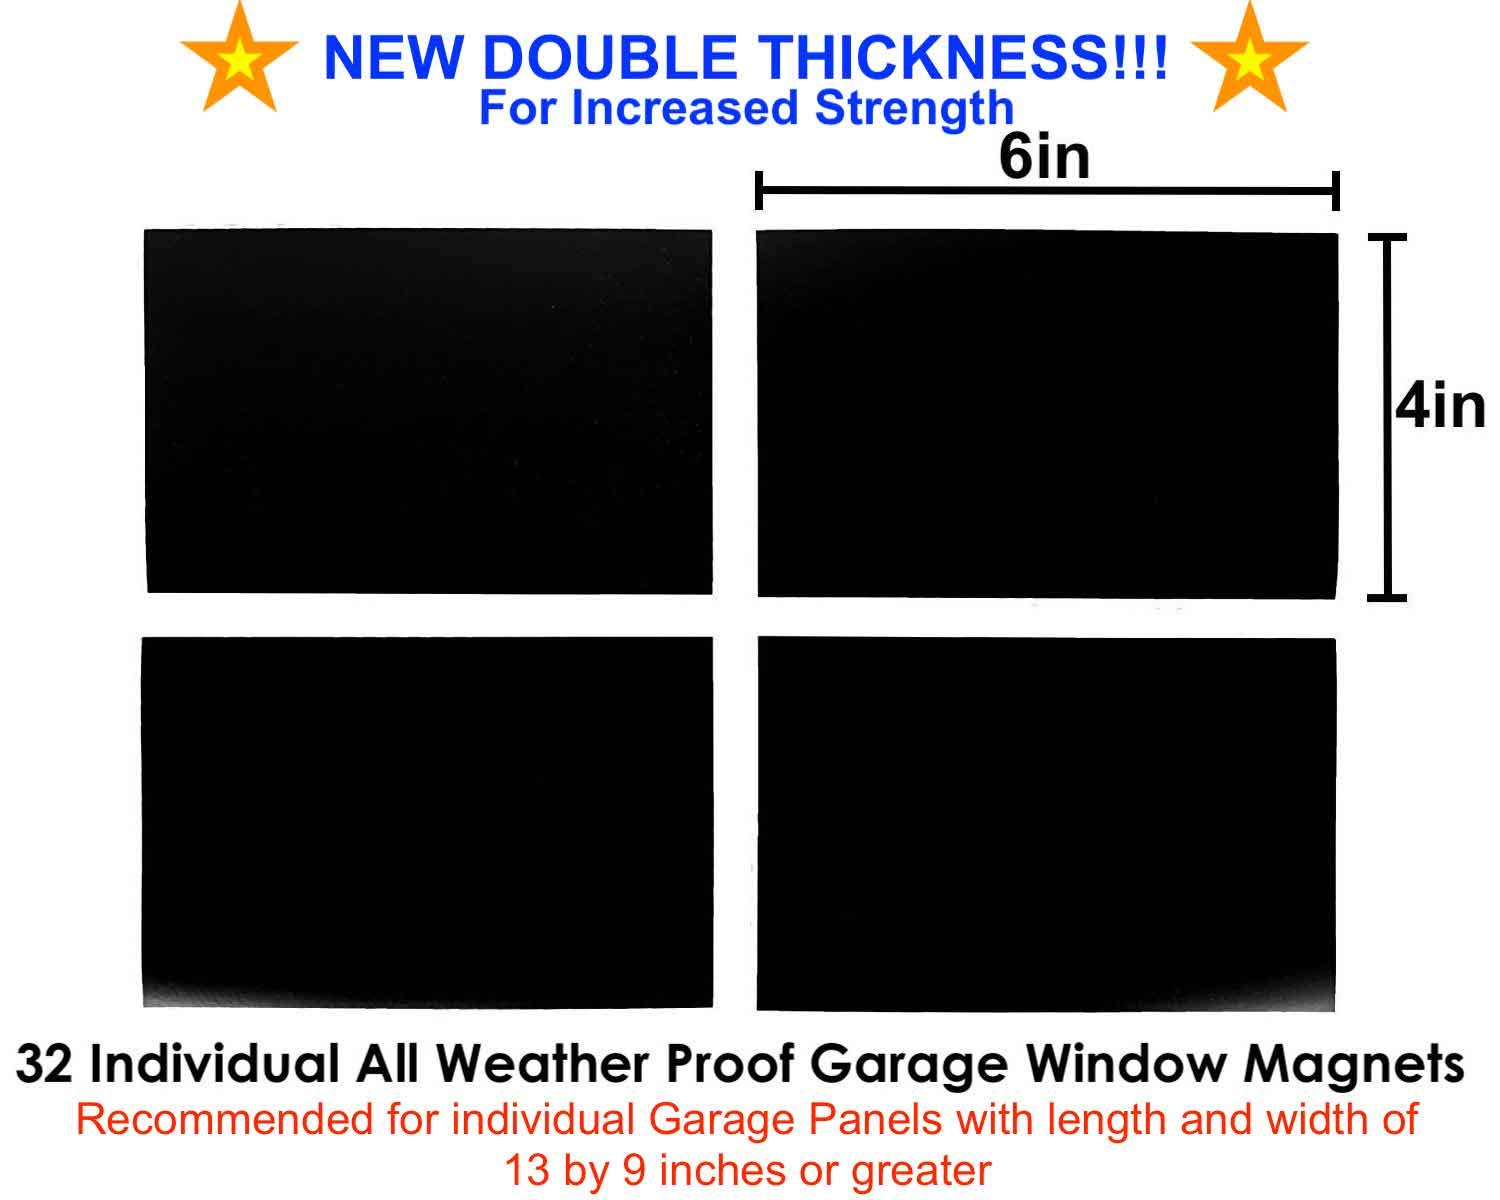 Magnetic Garage Door Windows Magnets Hardware Decorative Black Window Decals for Two Car Garage Now 2X Stronger Faux Windows 1 Car Garage Perfect for Decoration and Easy Installation